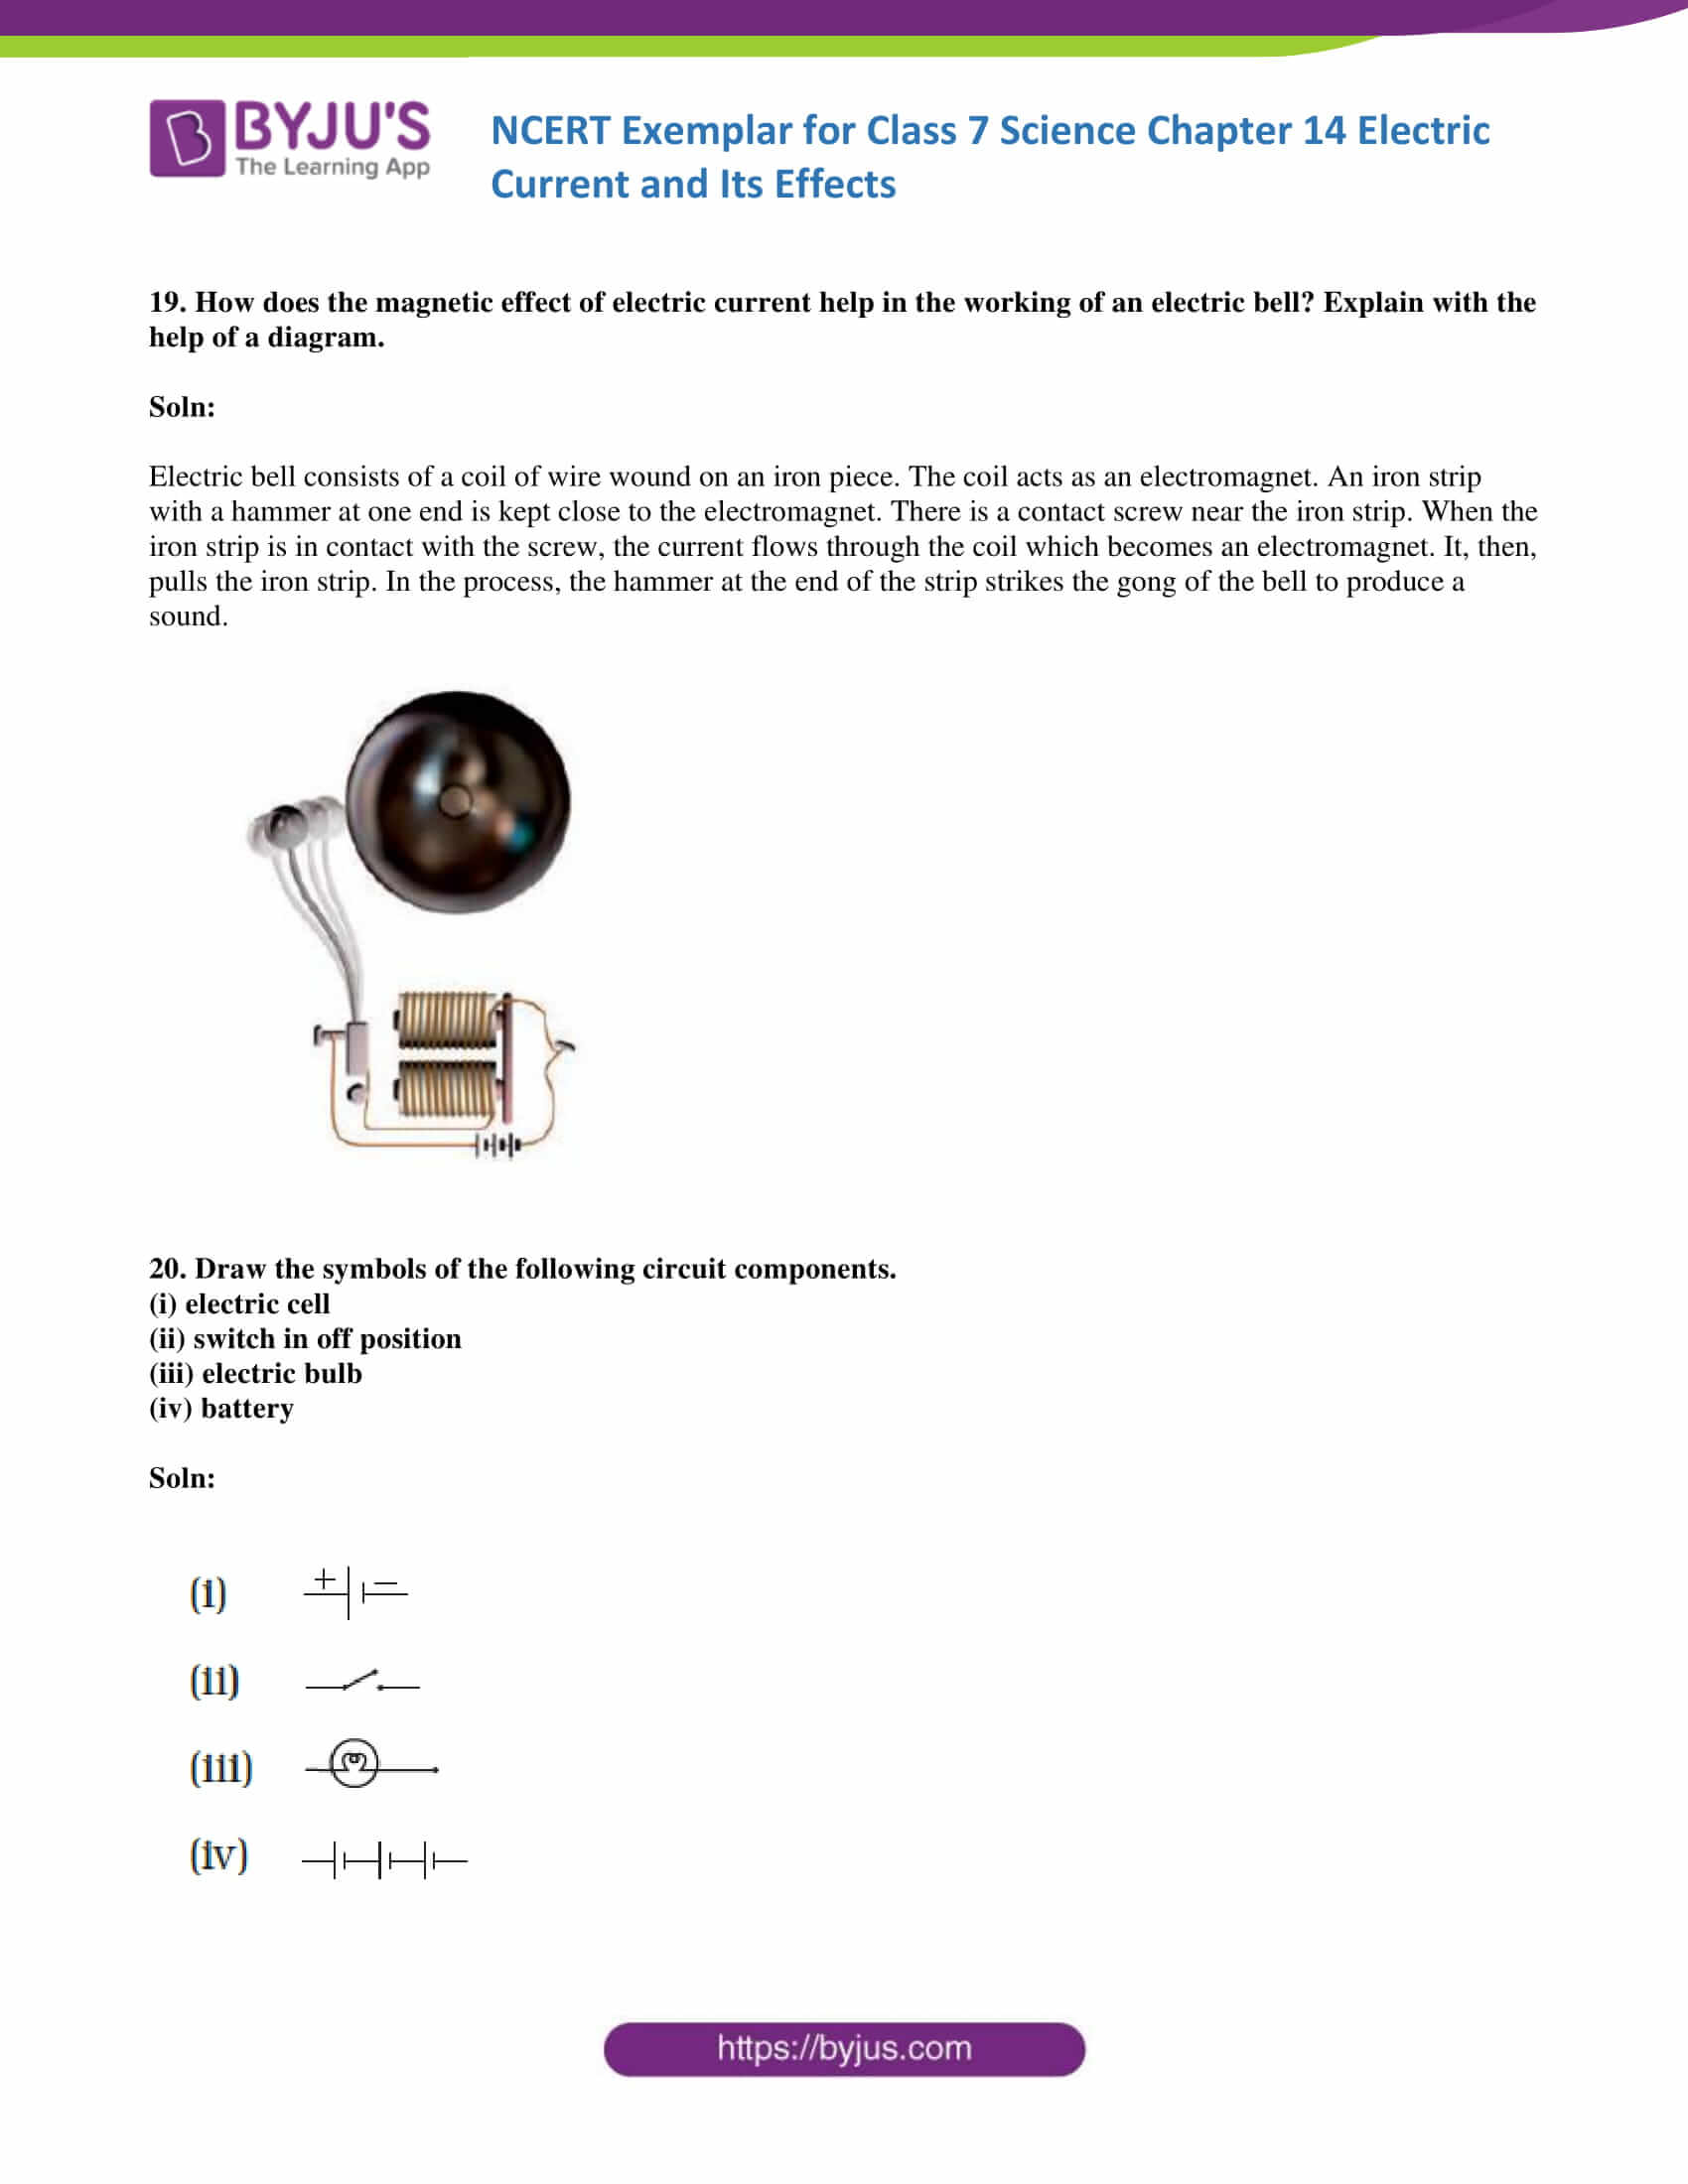 NCERT Exemplar solution class 7 science Chapter 14 7